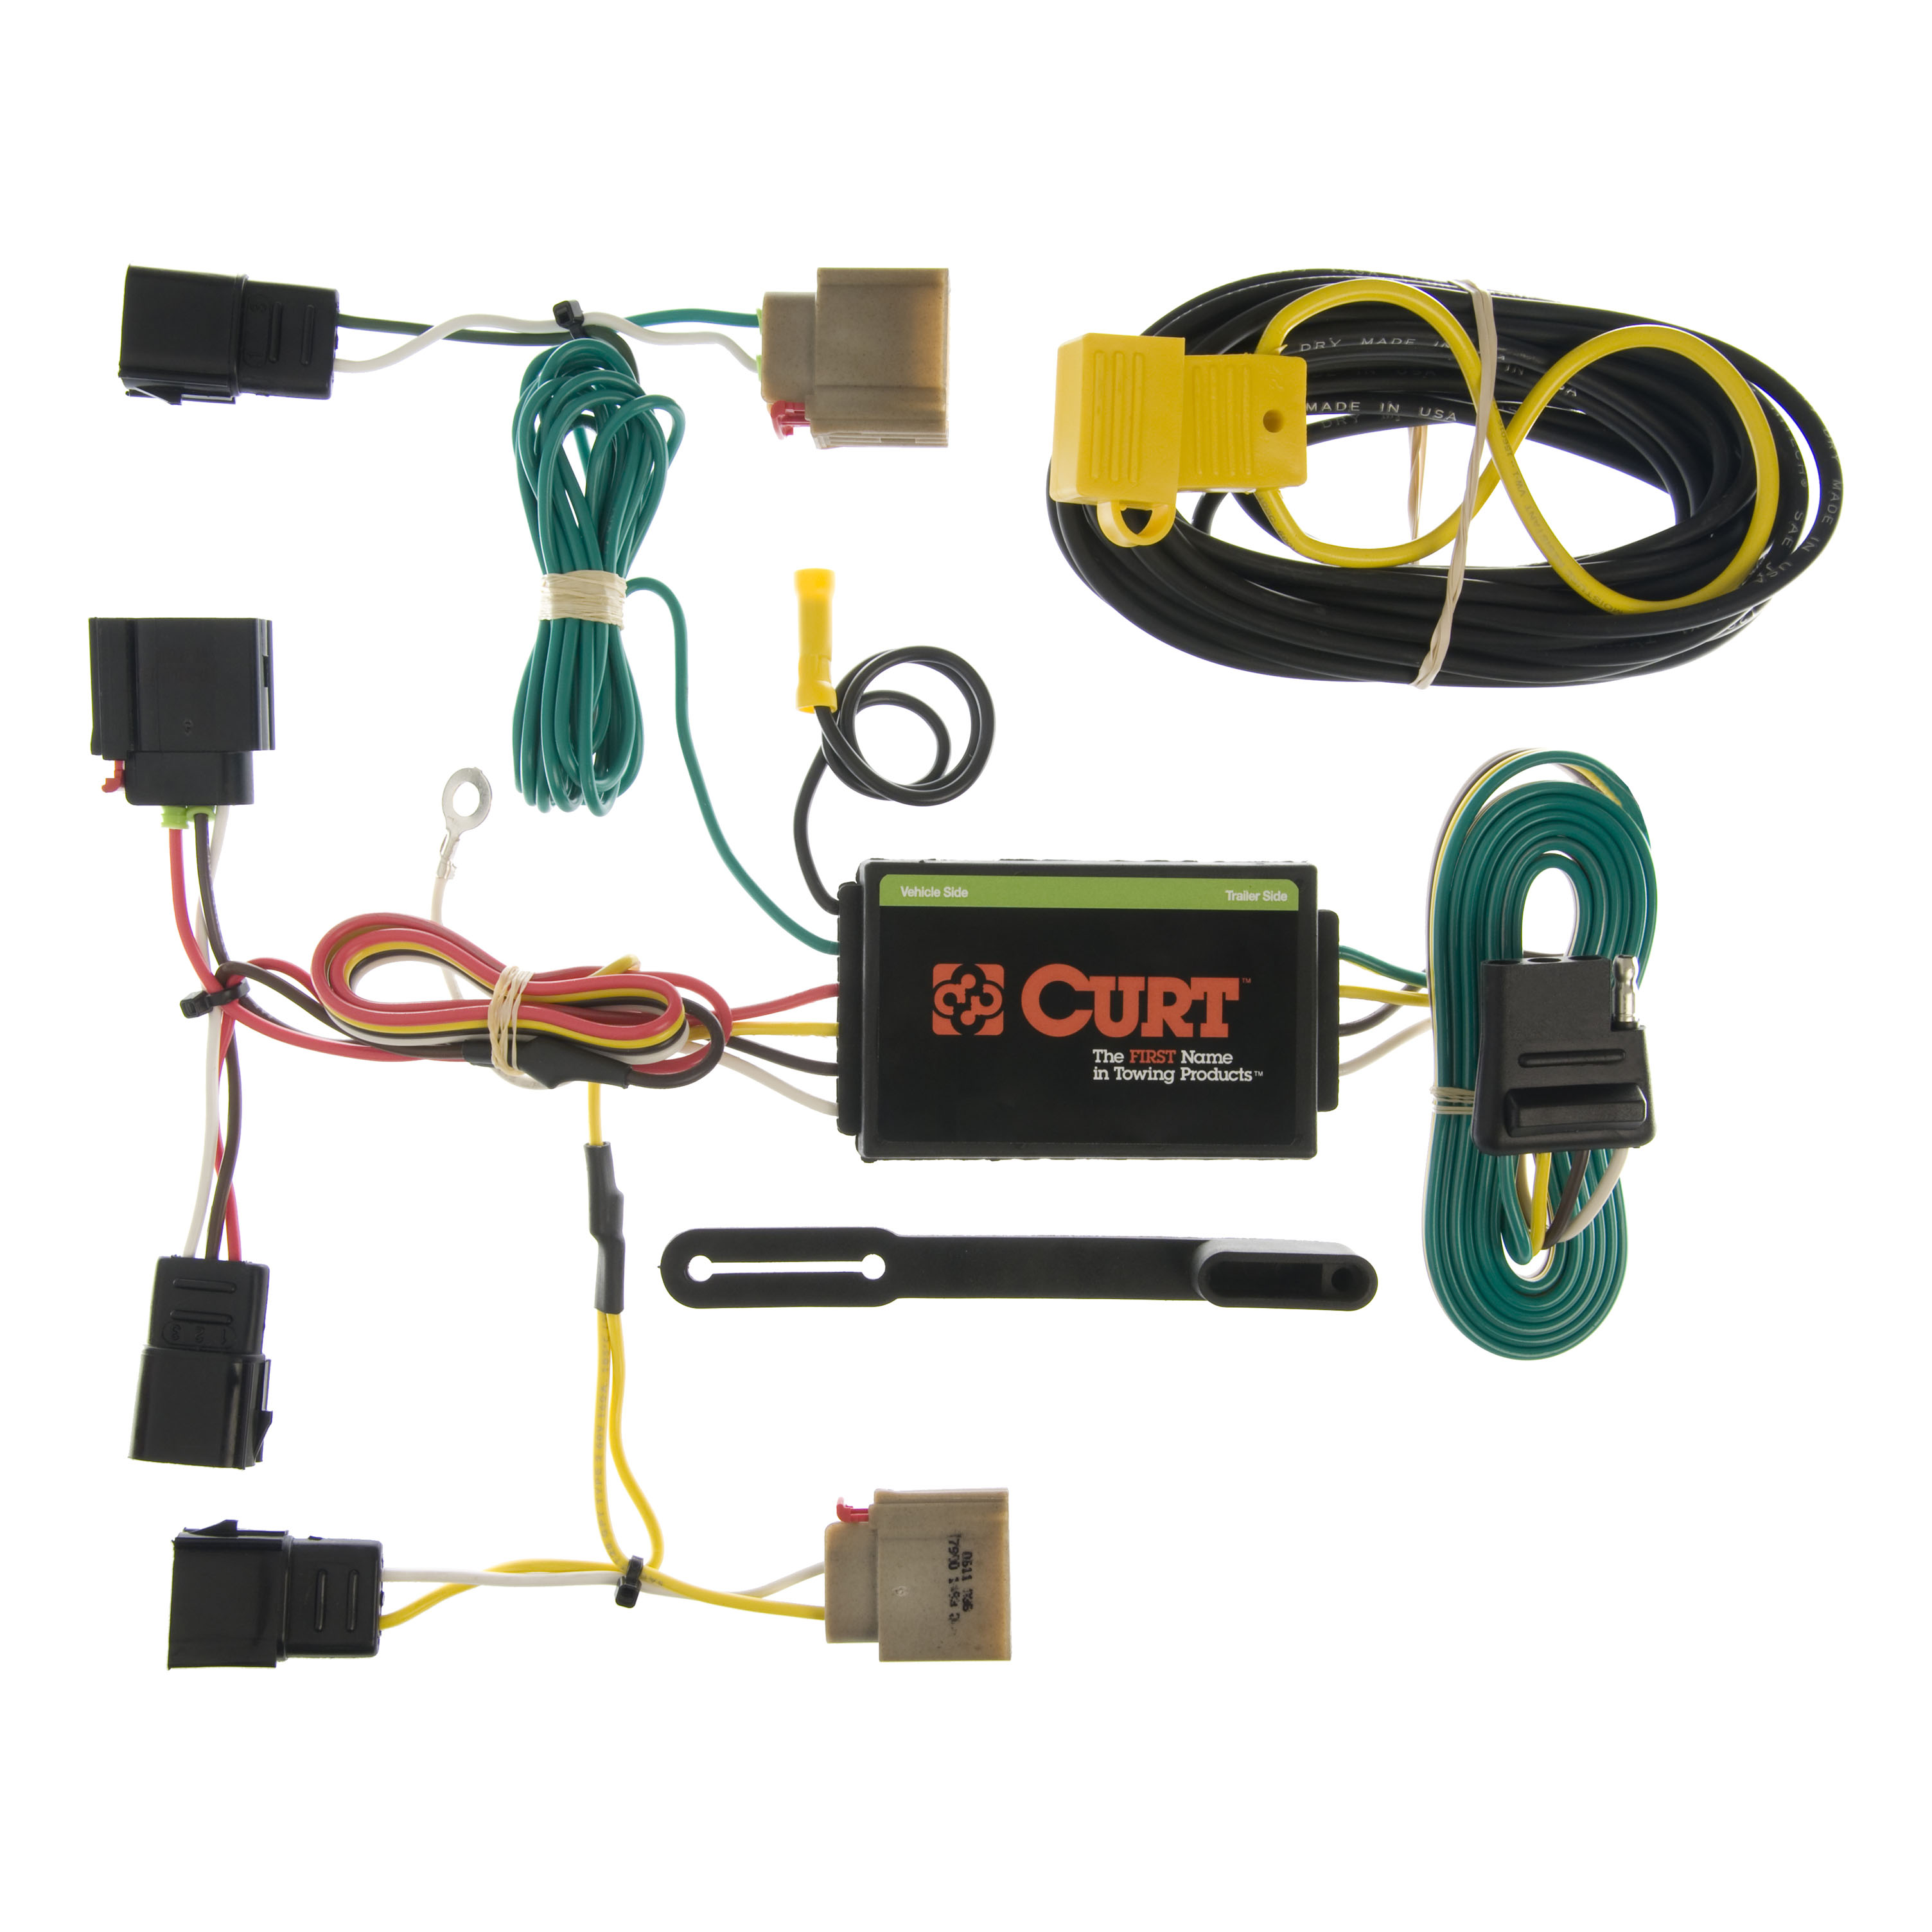 Curt Custom Vehicle To Trailer Wiring Harness 55050 For 2007 Dodge Caliber